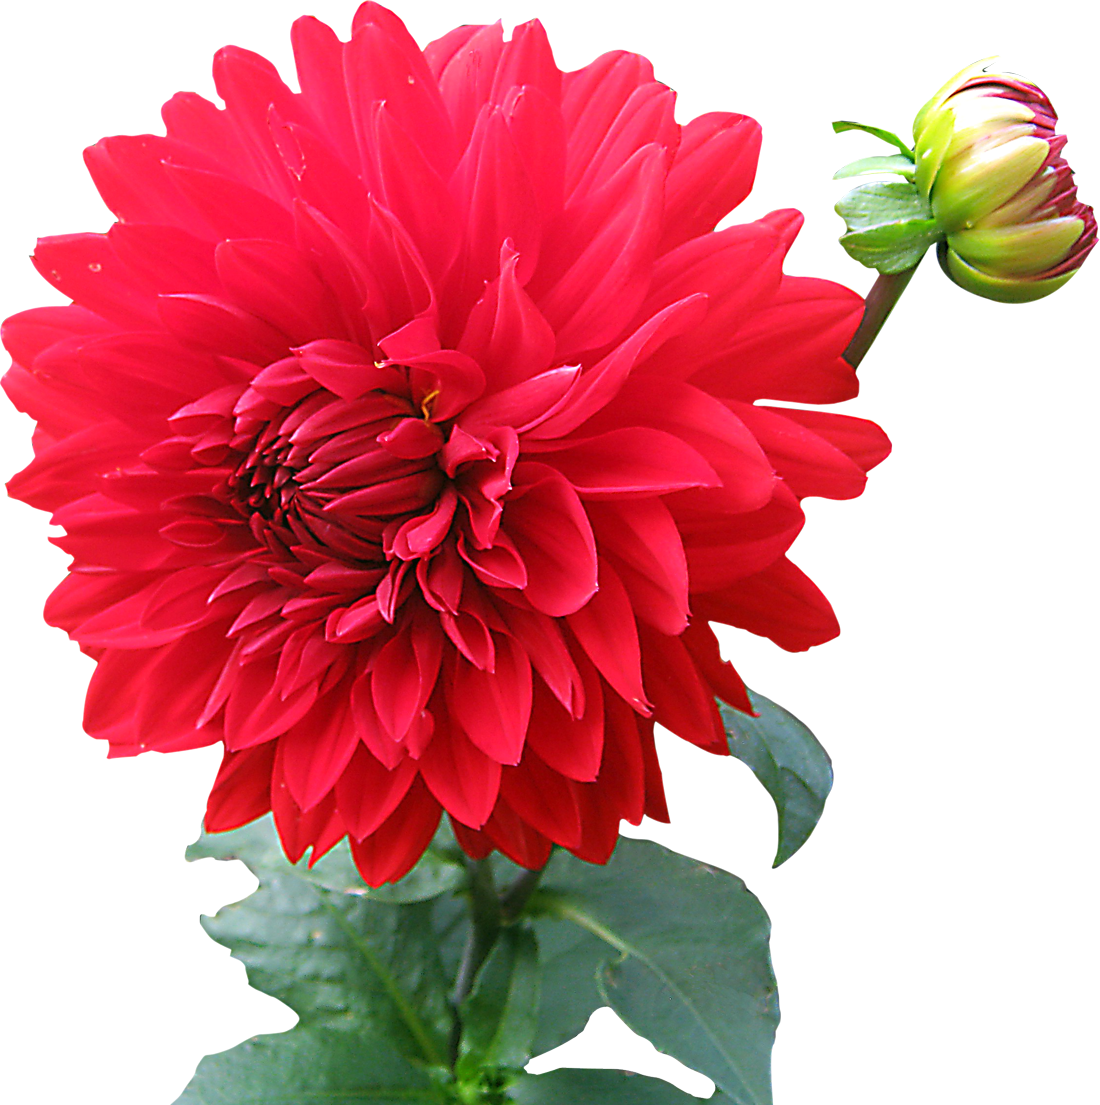 Dahlia Free Png Image PNG Image